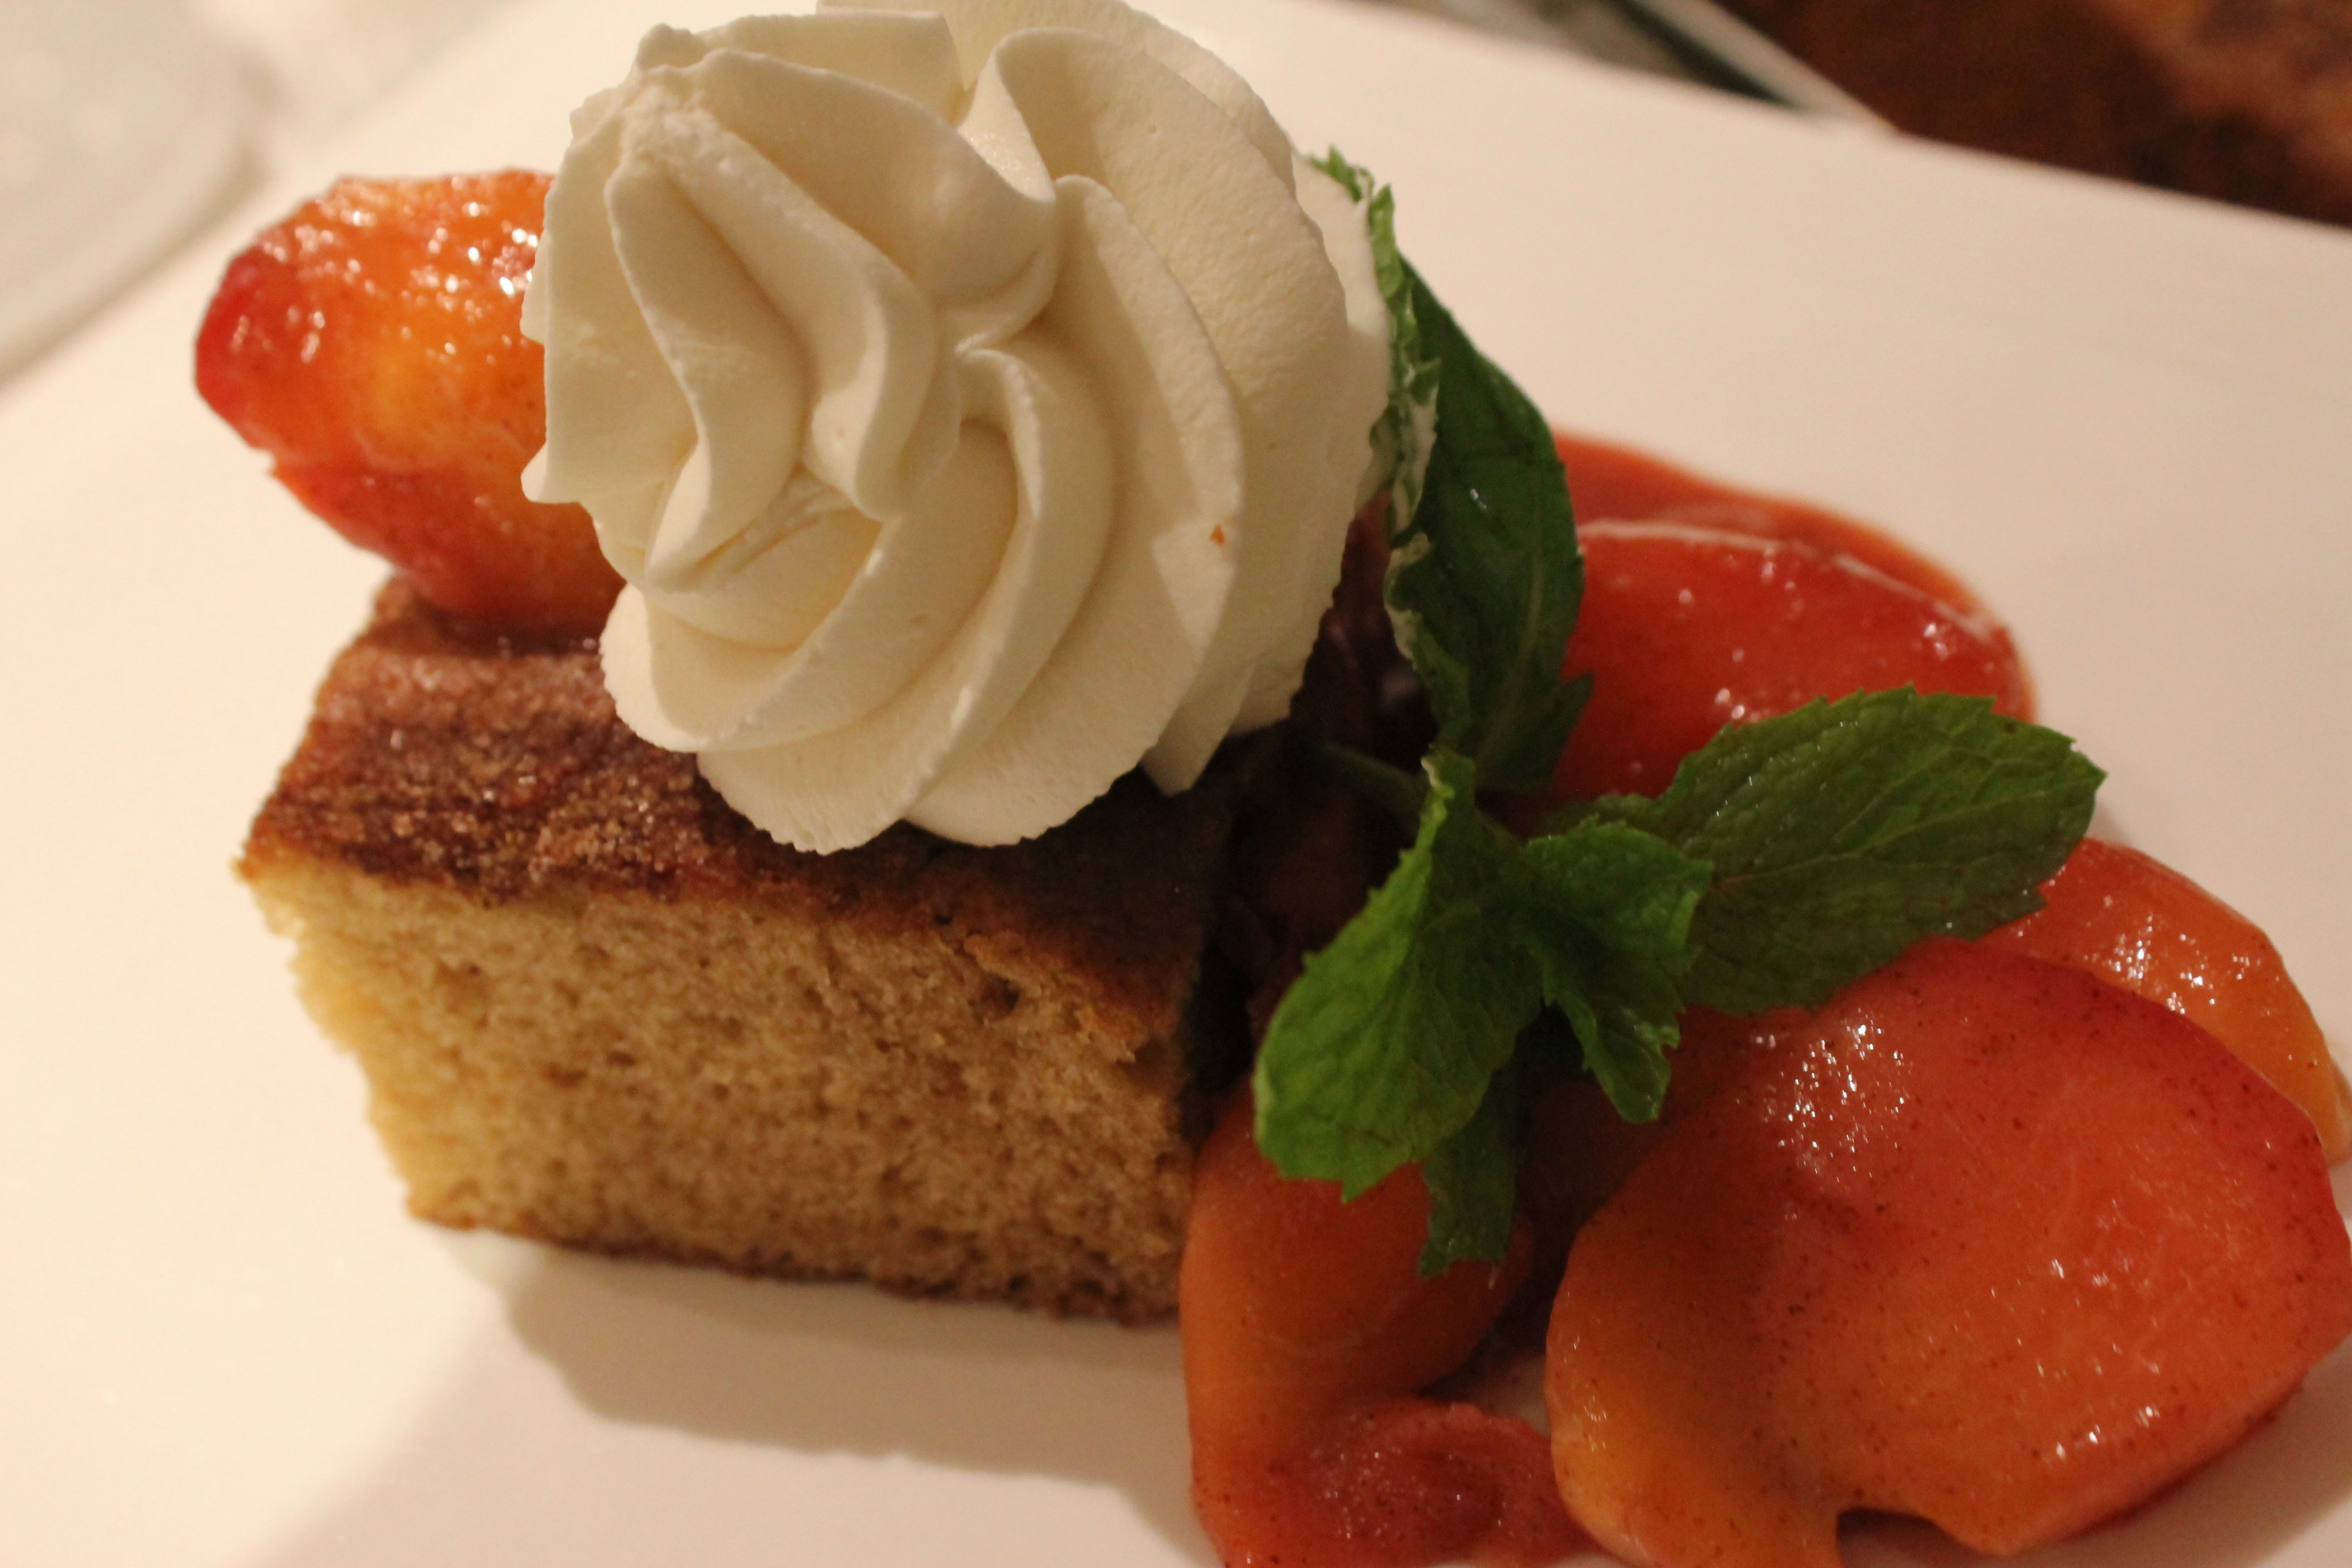 Summer Spiced Cake with Sautéed Peaches